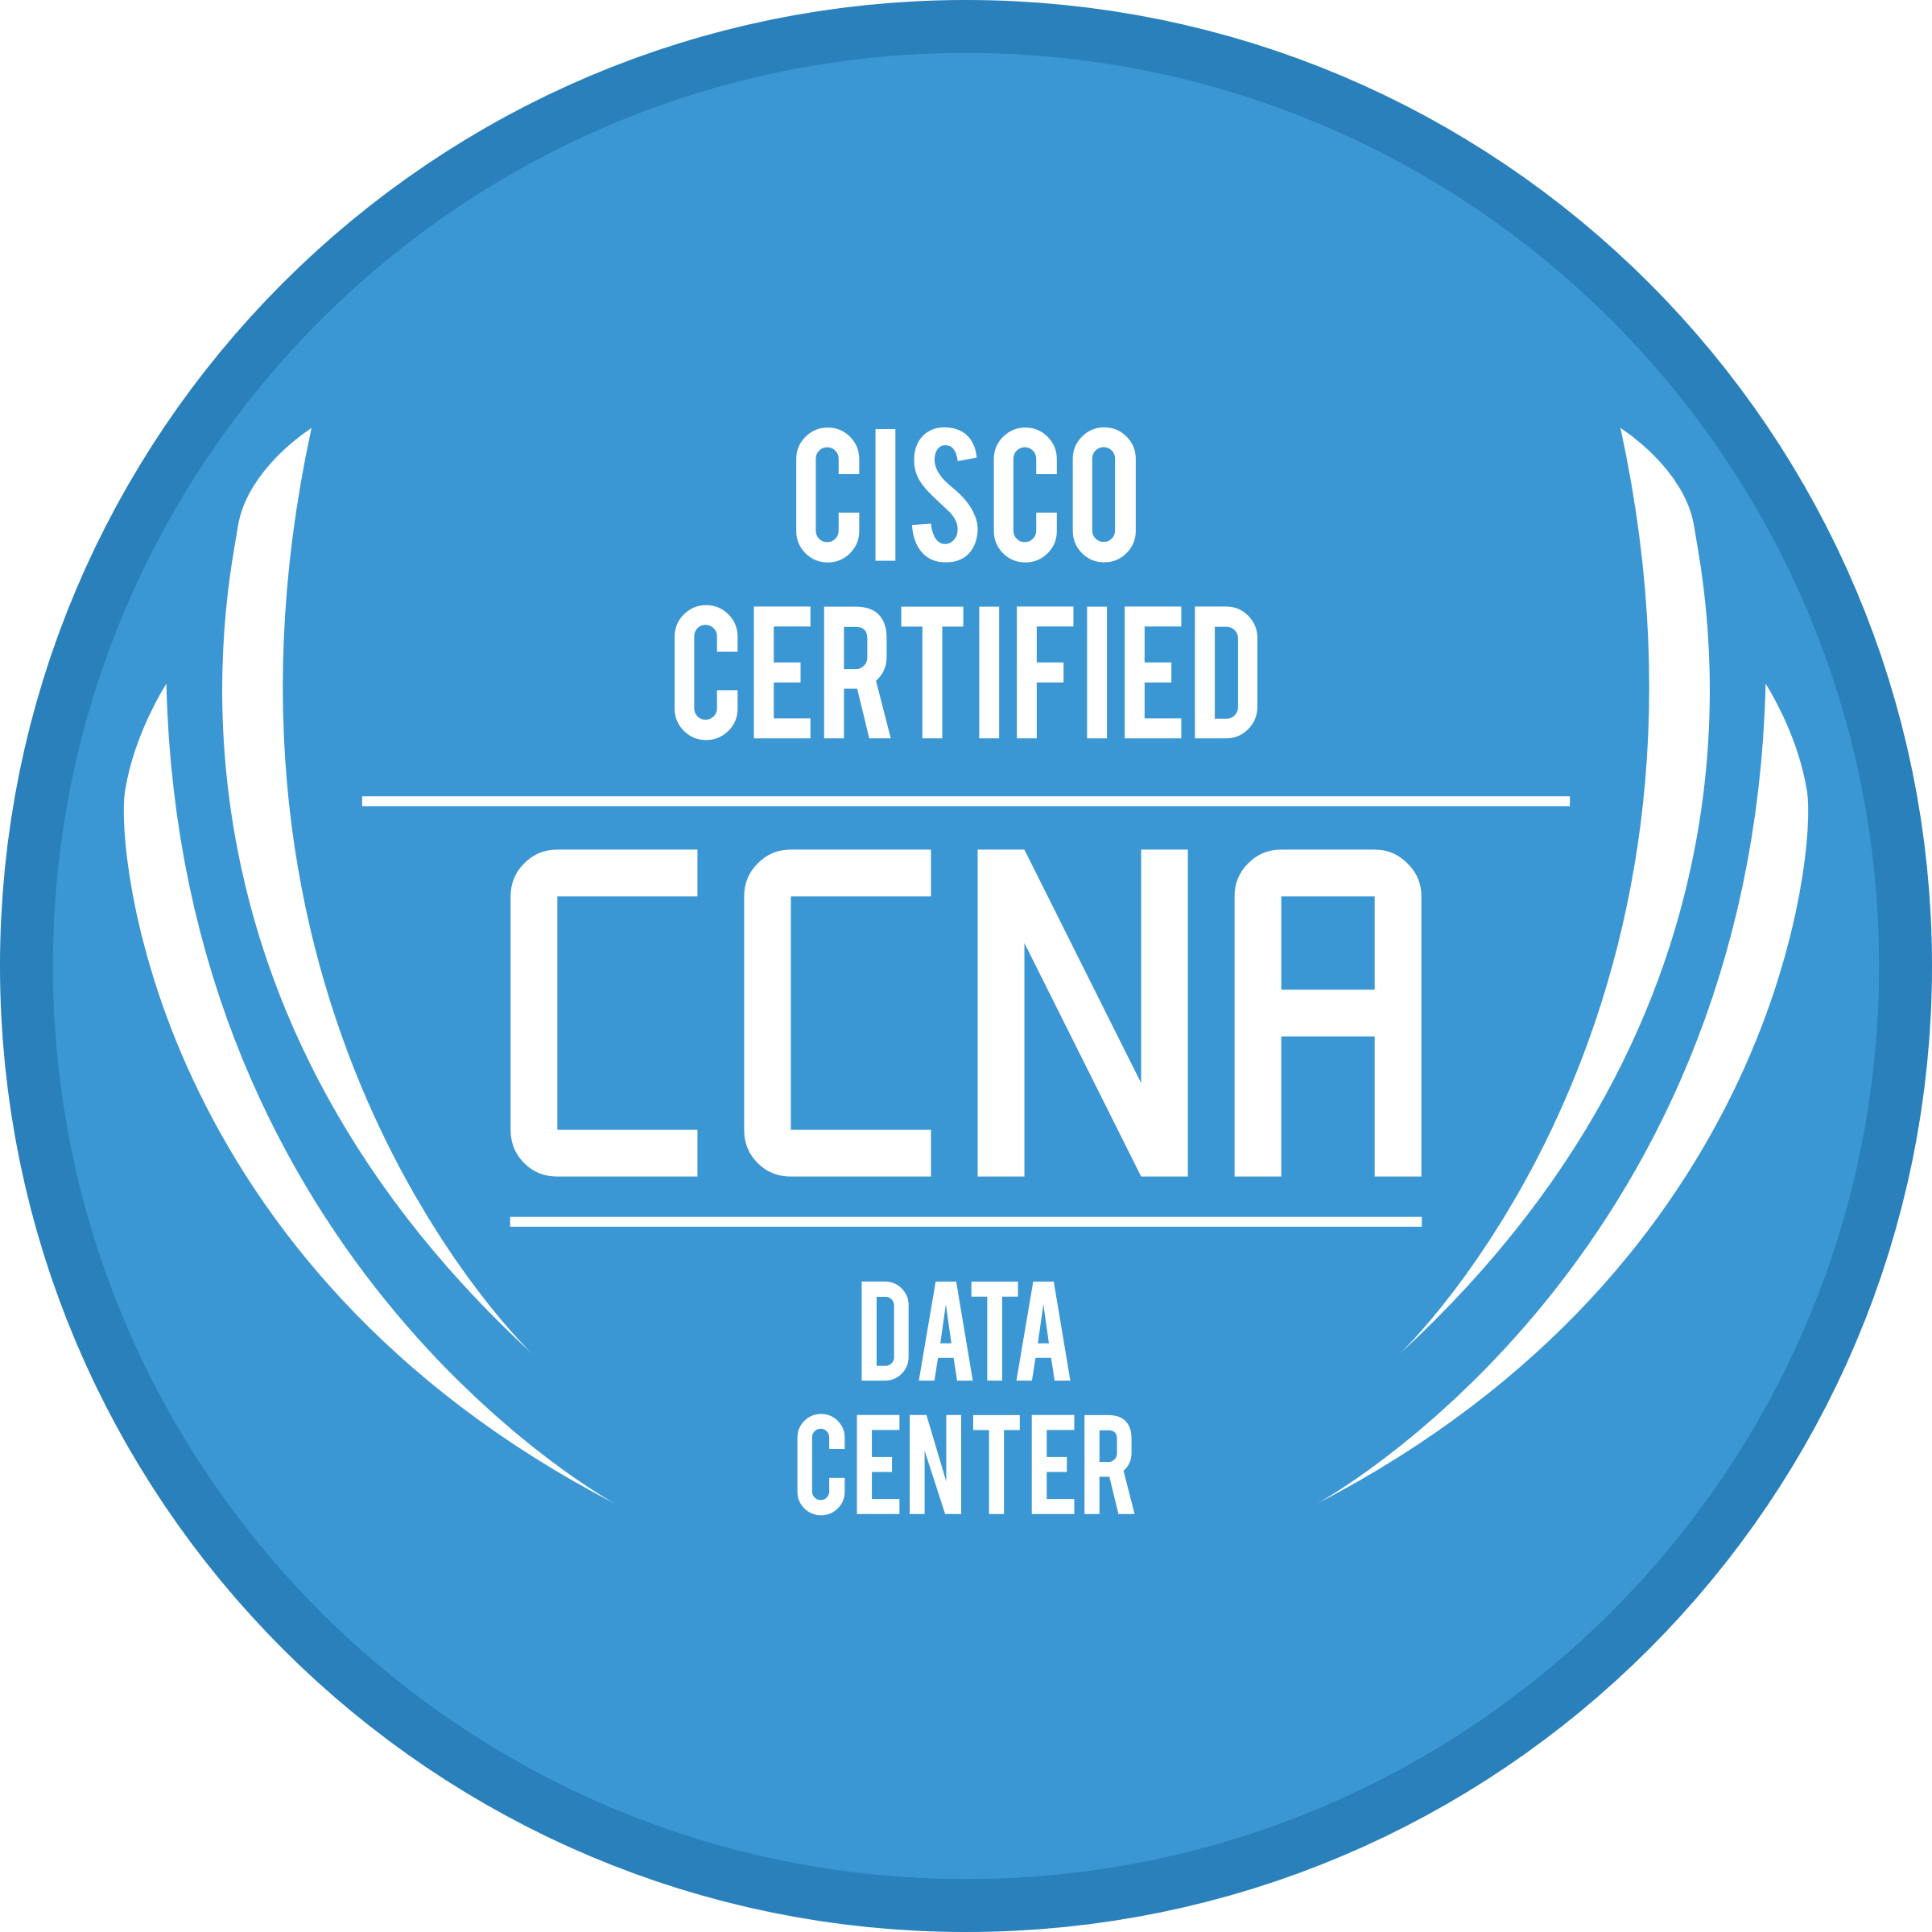 CCNA Data Center by Yudha Agung Pribadi